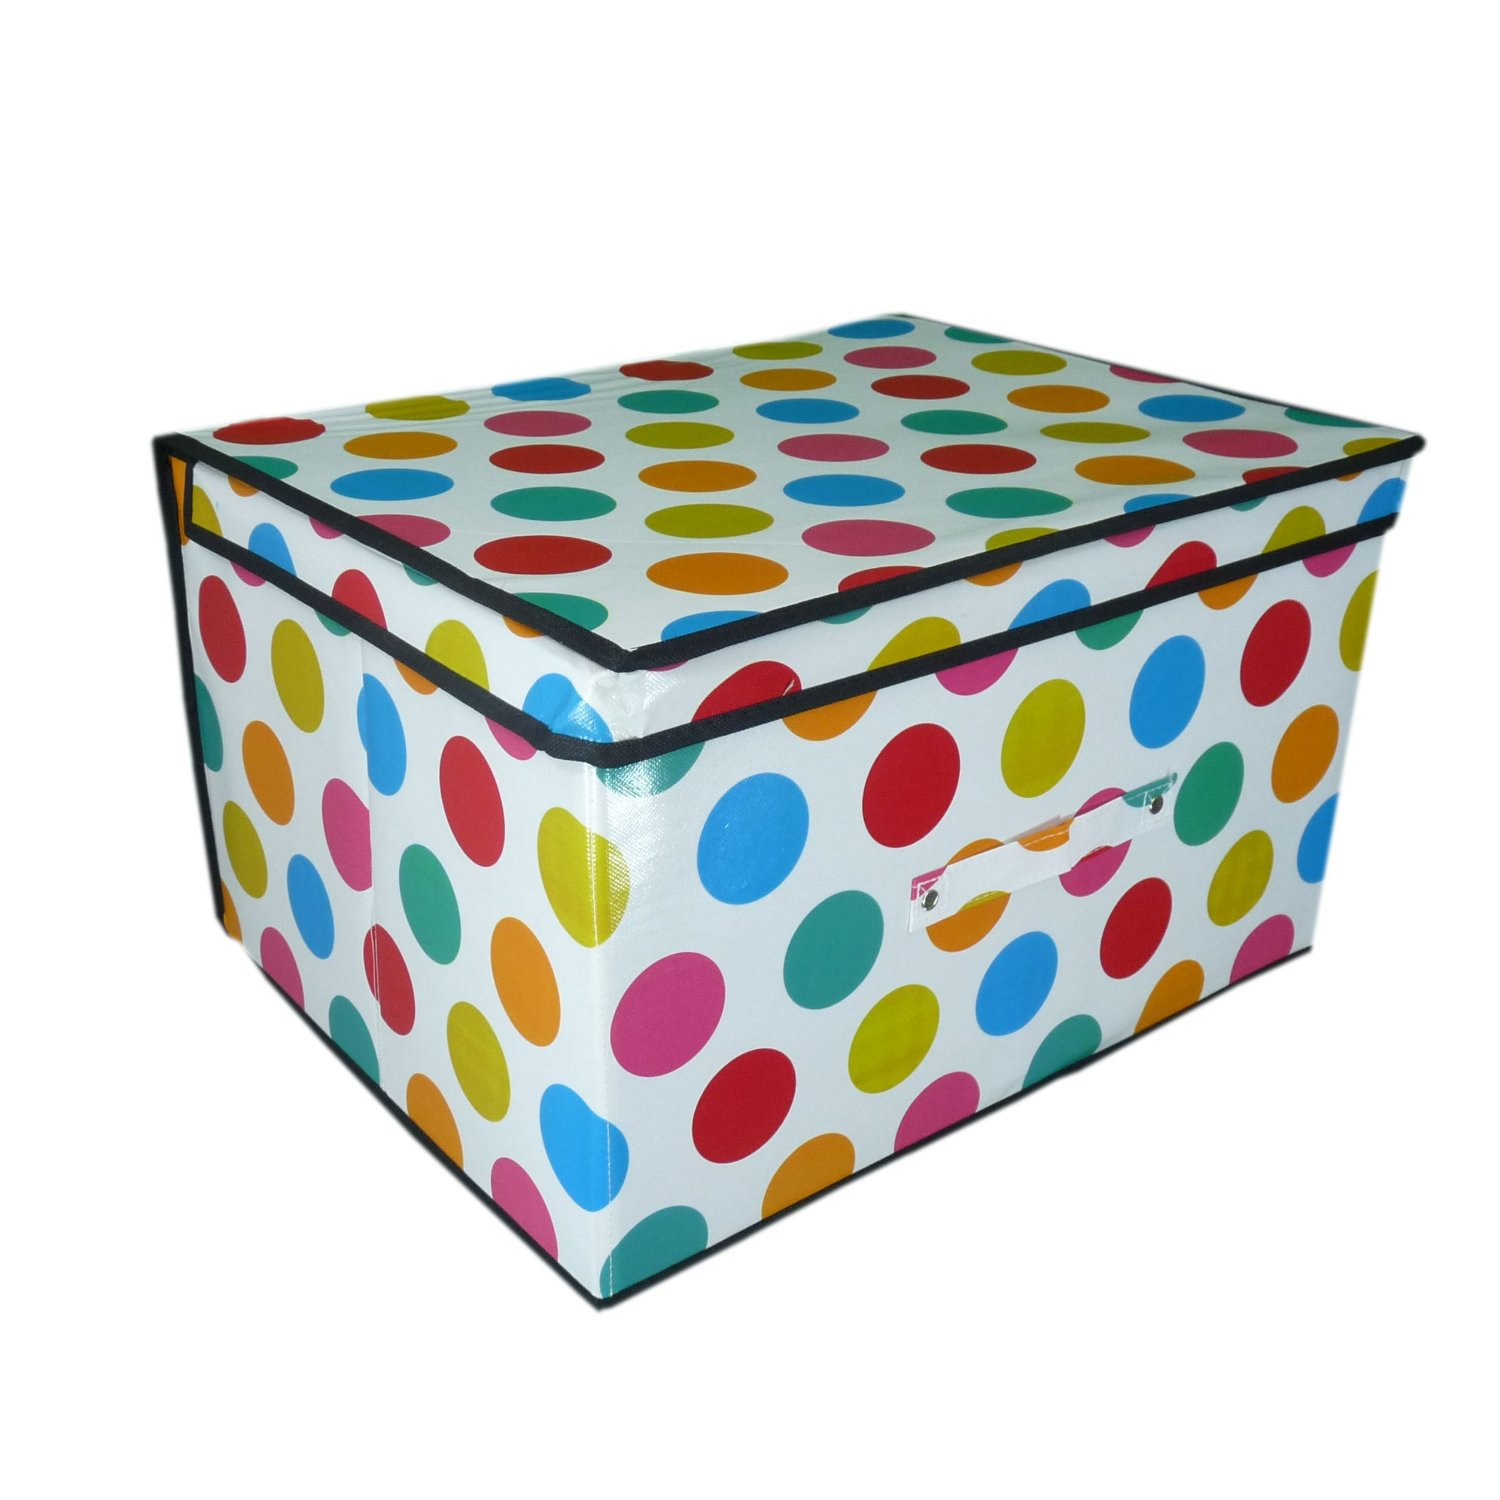 Childrens Jumbo Bedroom Room Tidy Toy Storage Chest Box Trunk: Jumbo Storage Box Quality Folding Kids Room Tidy Toy